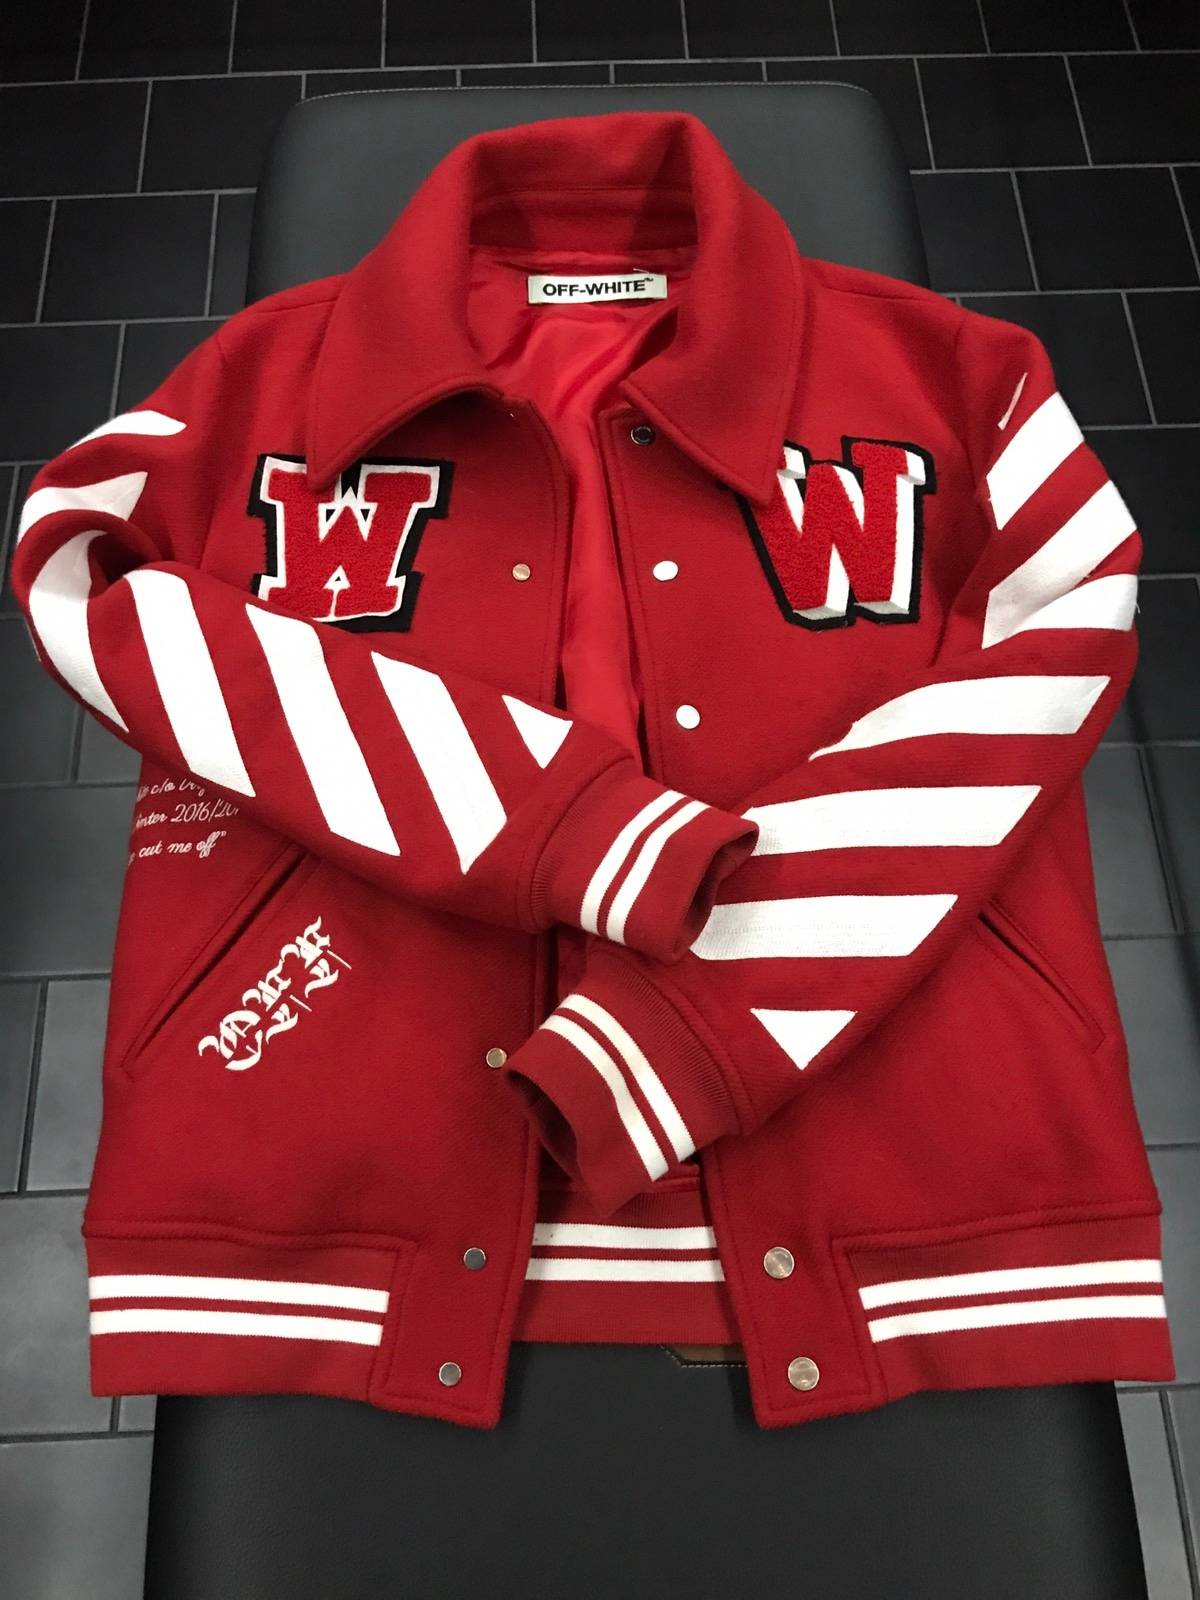 Off White Red Varsity Jacket Size Xxs Light Jackets For Sale Grailed